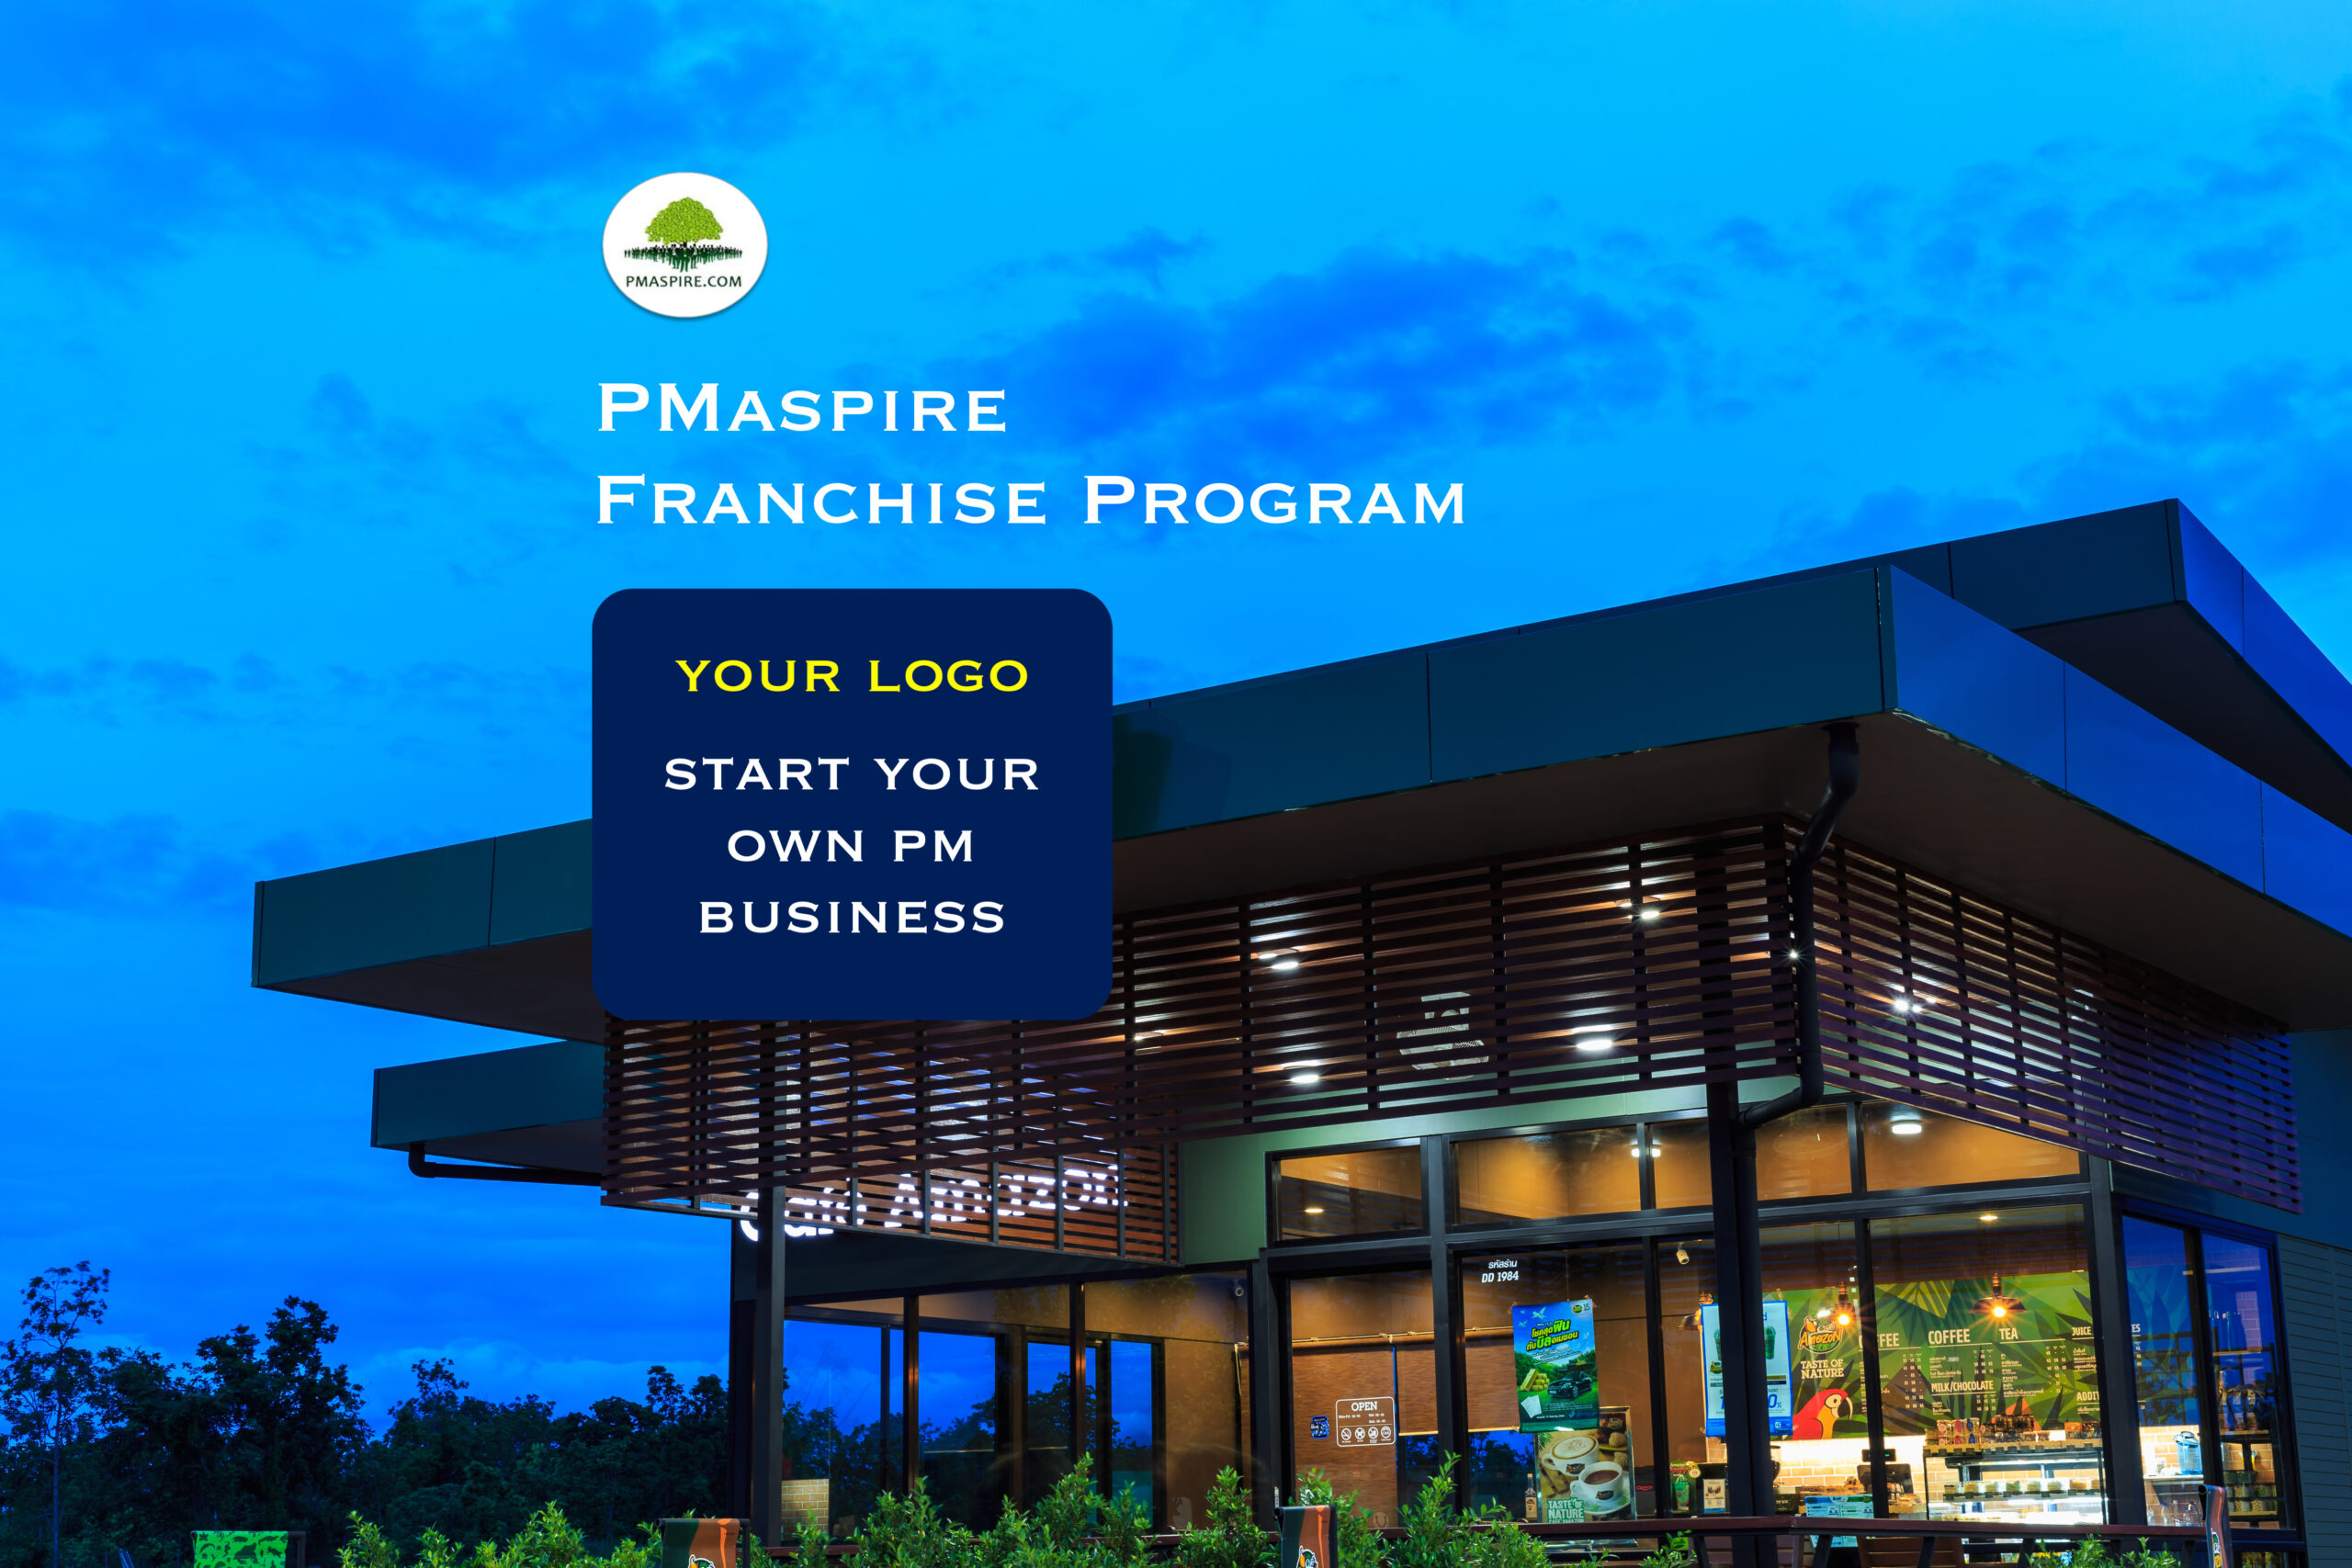 PMaspire Franchise Program